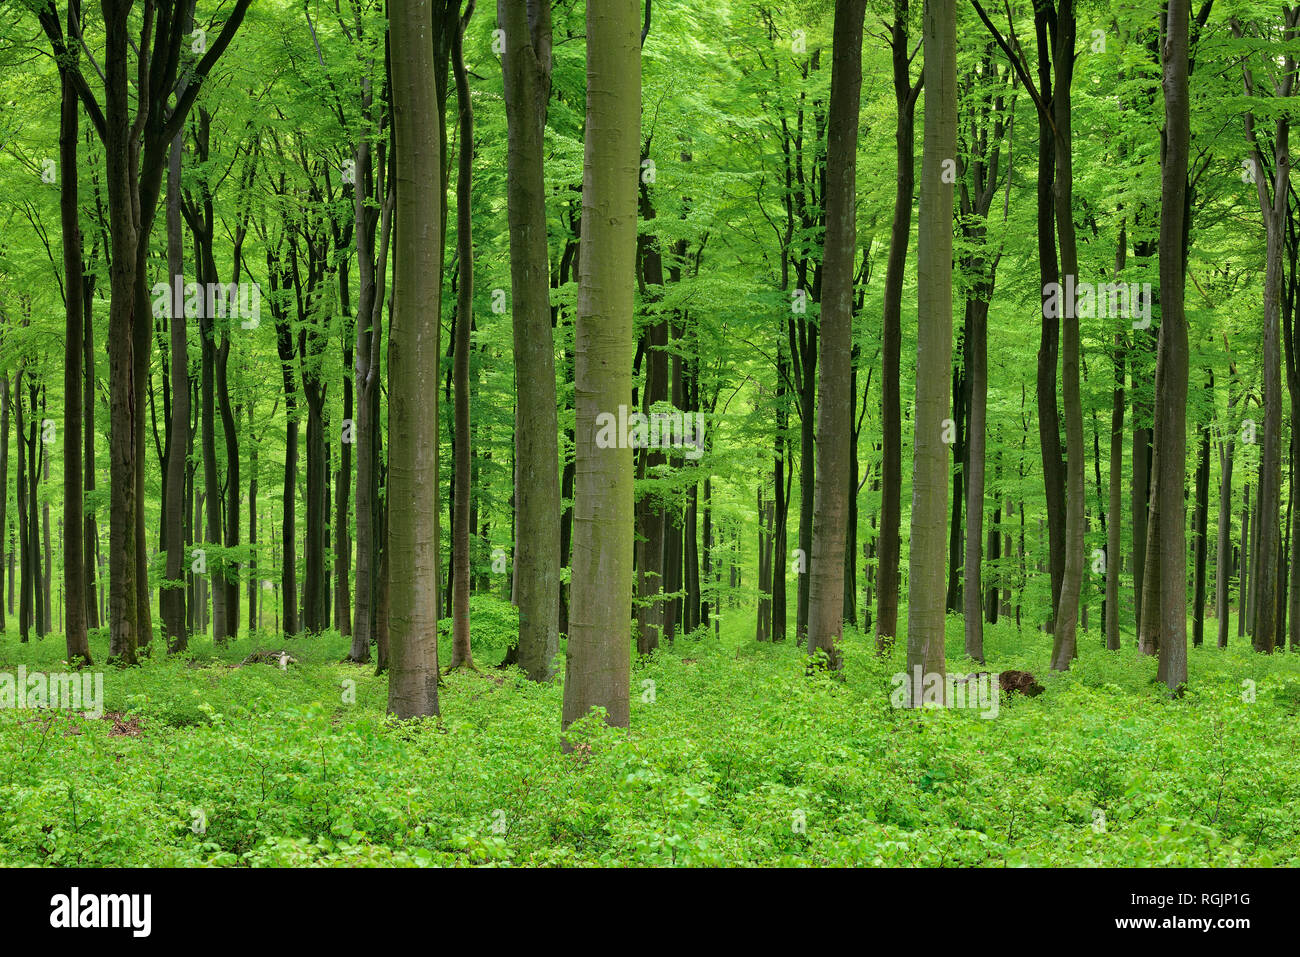 Vital green forest in spring. Westerwald, Rhineland-Palatinate, Germany Stock Photo